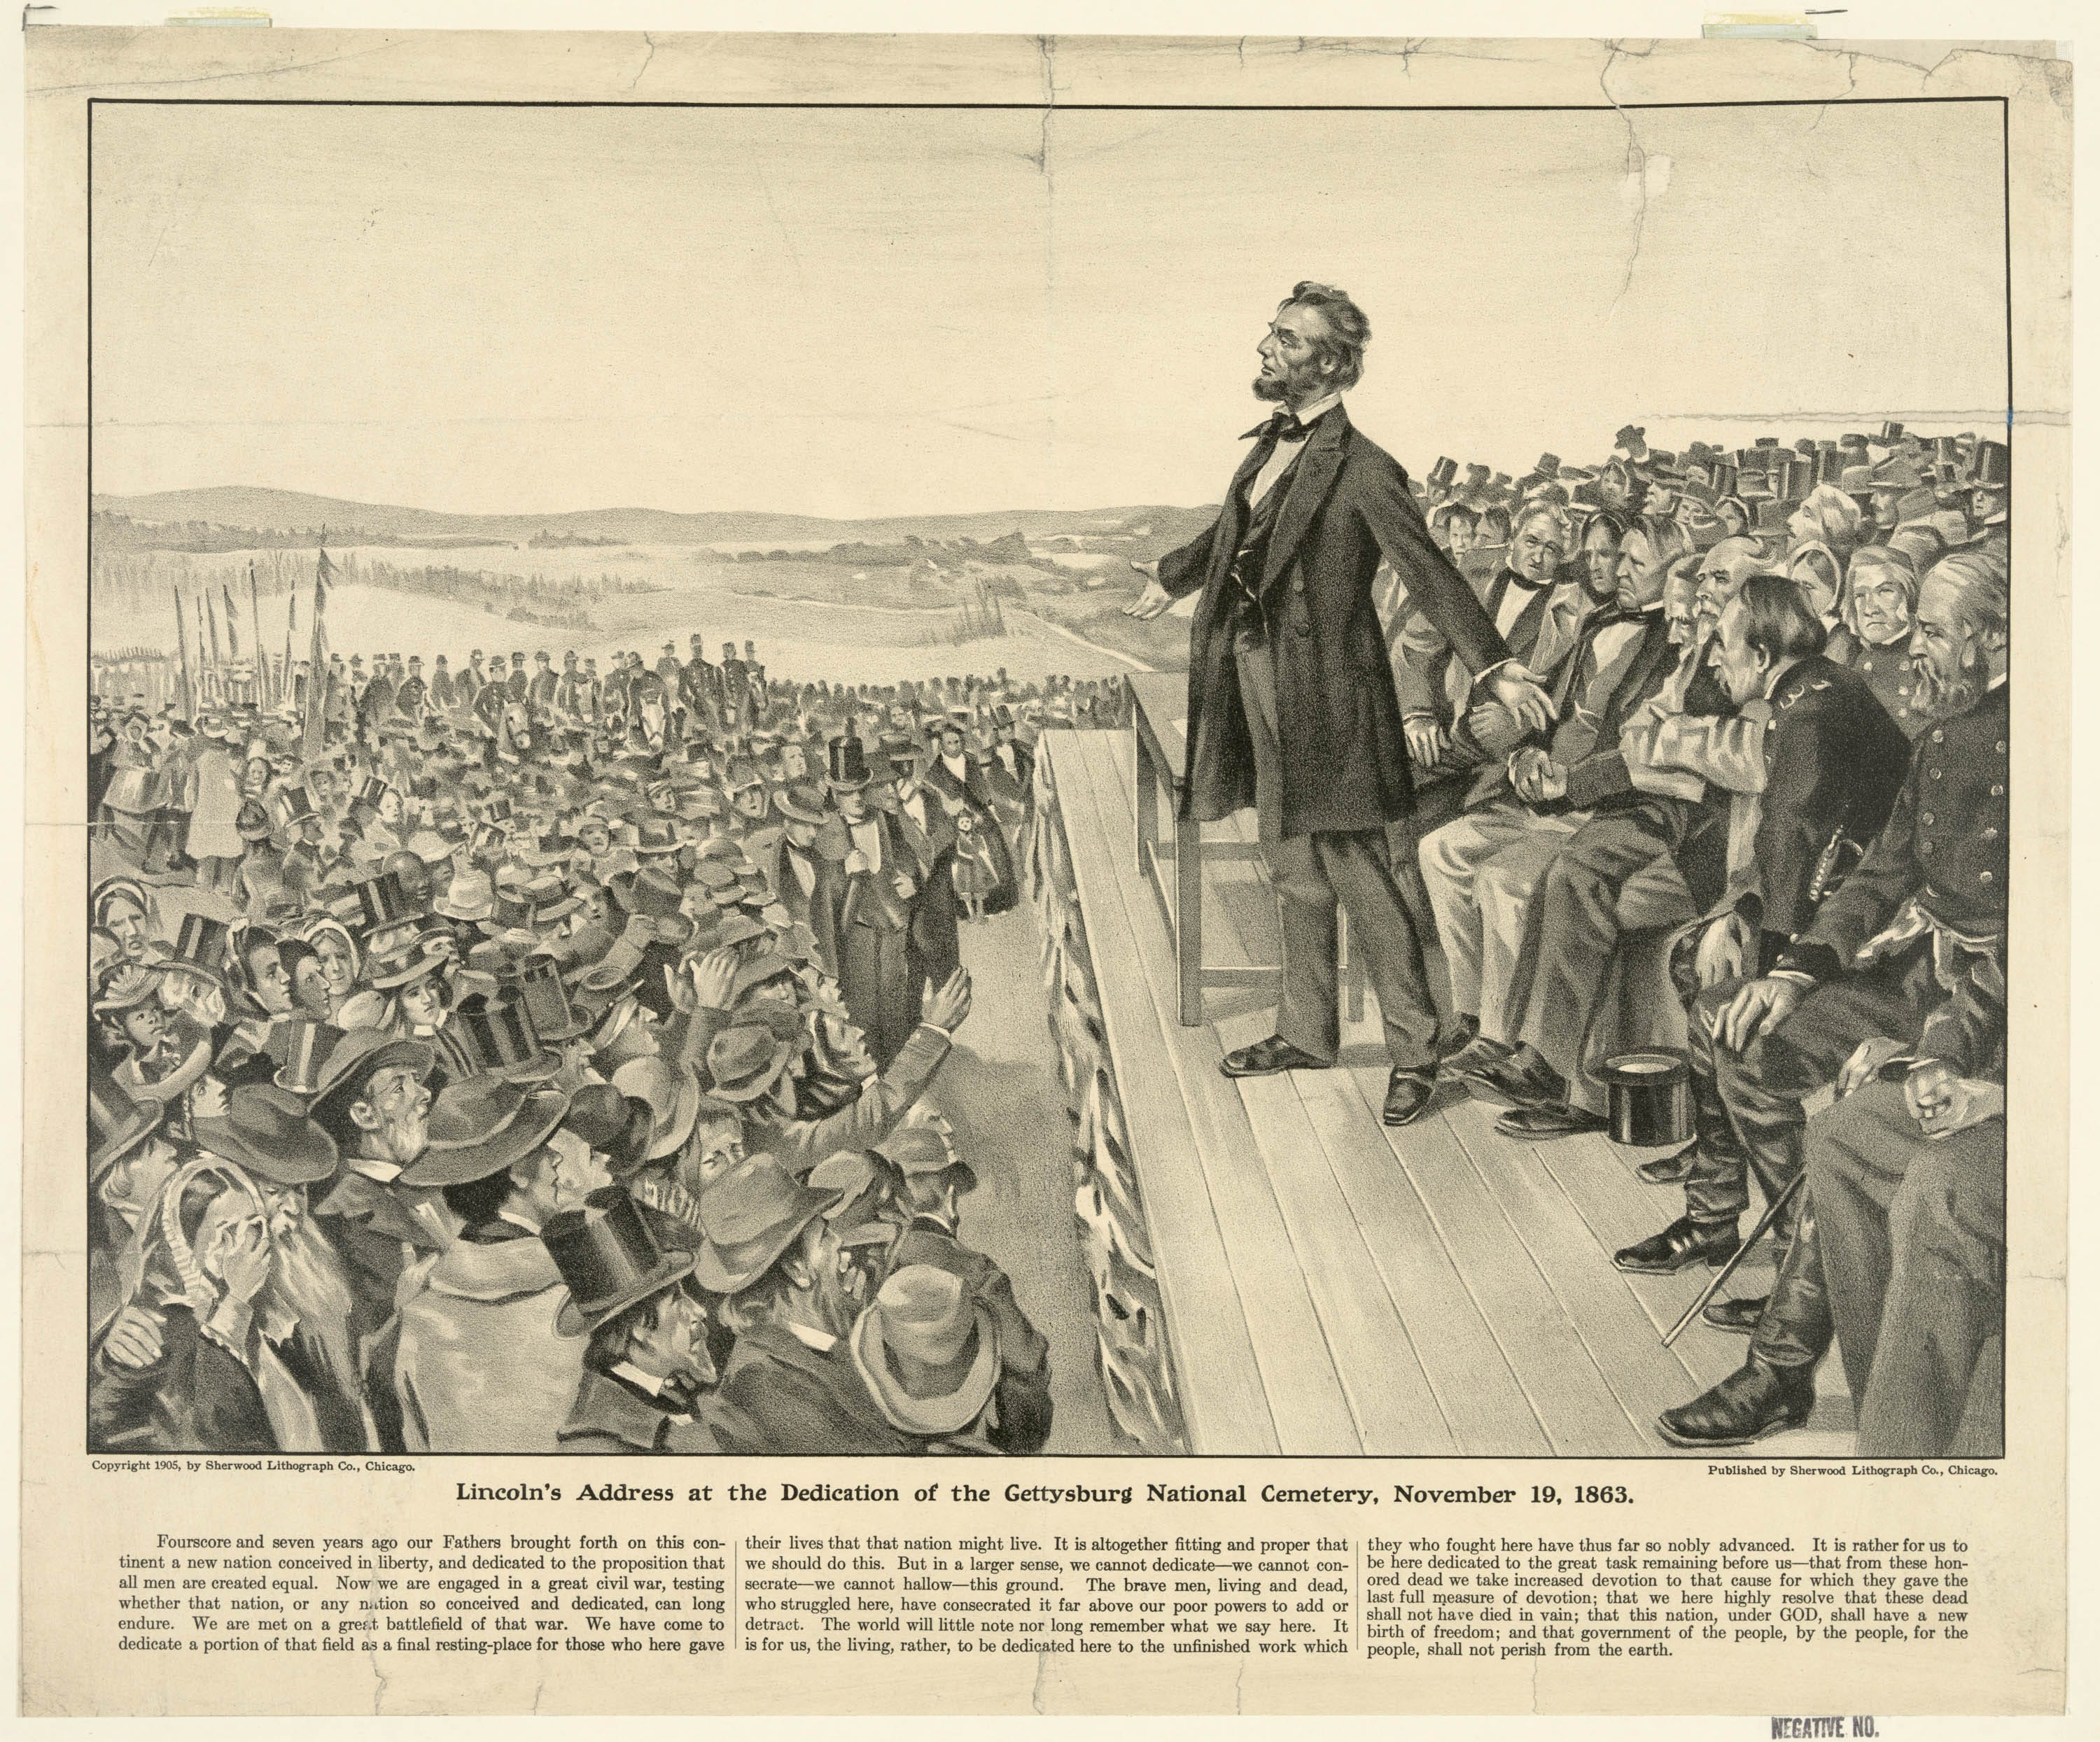 Lincolns Gettysburg Address and the Battle of Gettysburg Through Primary Sources